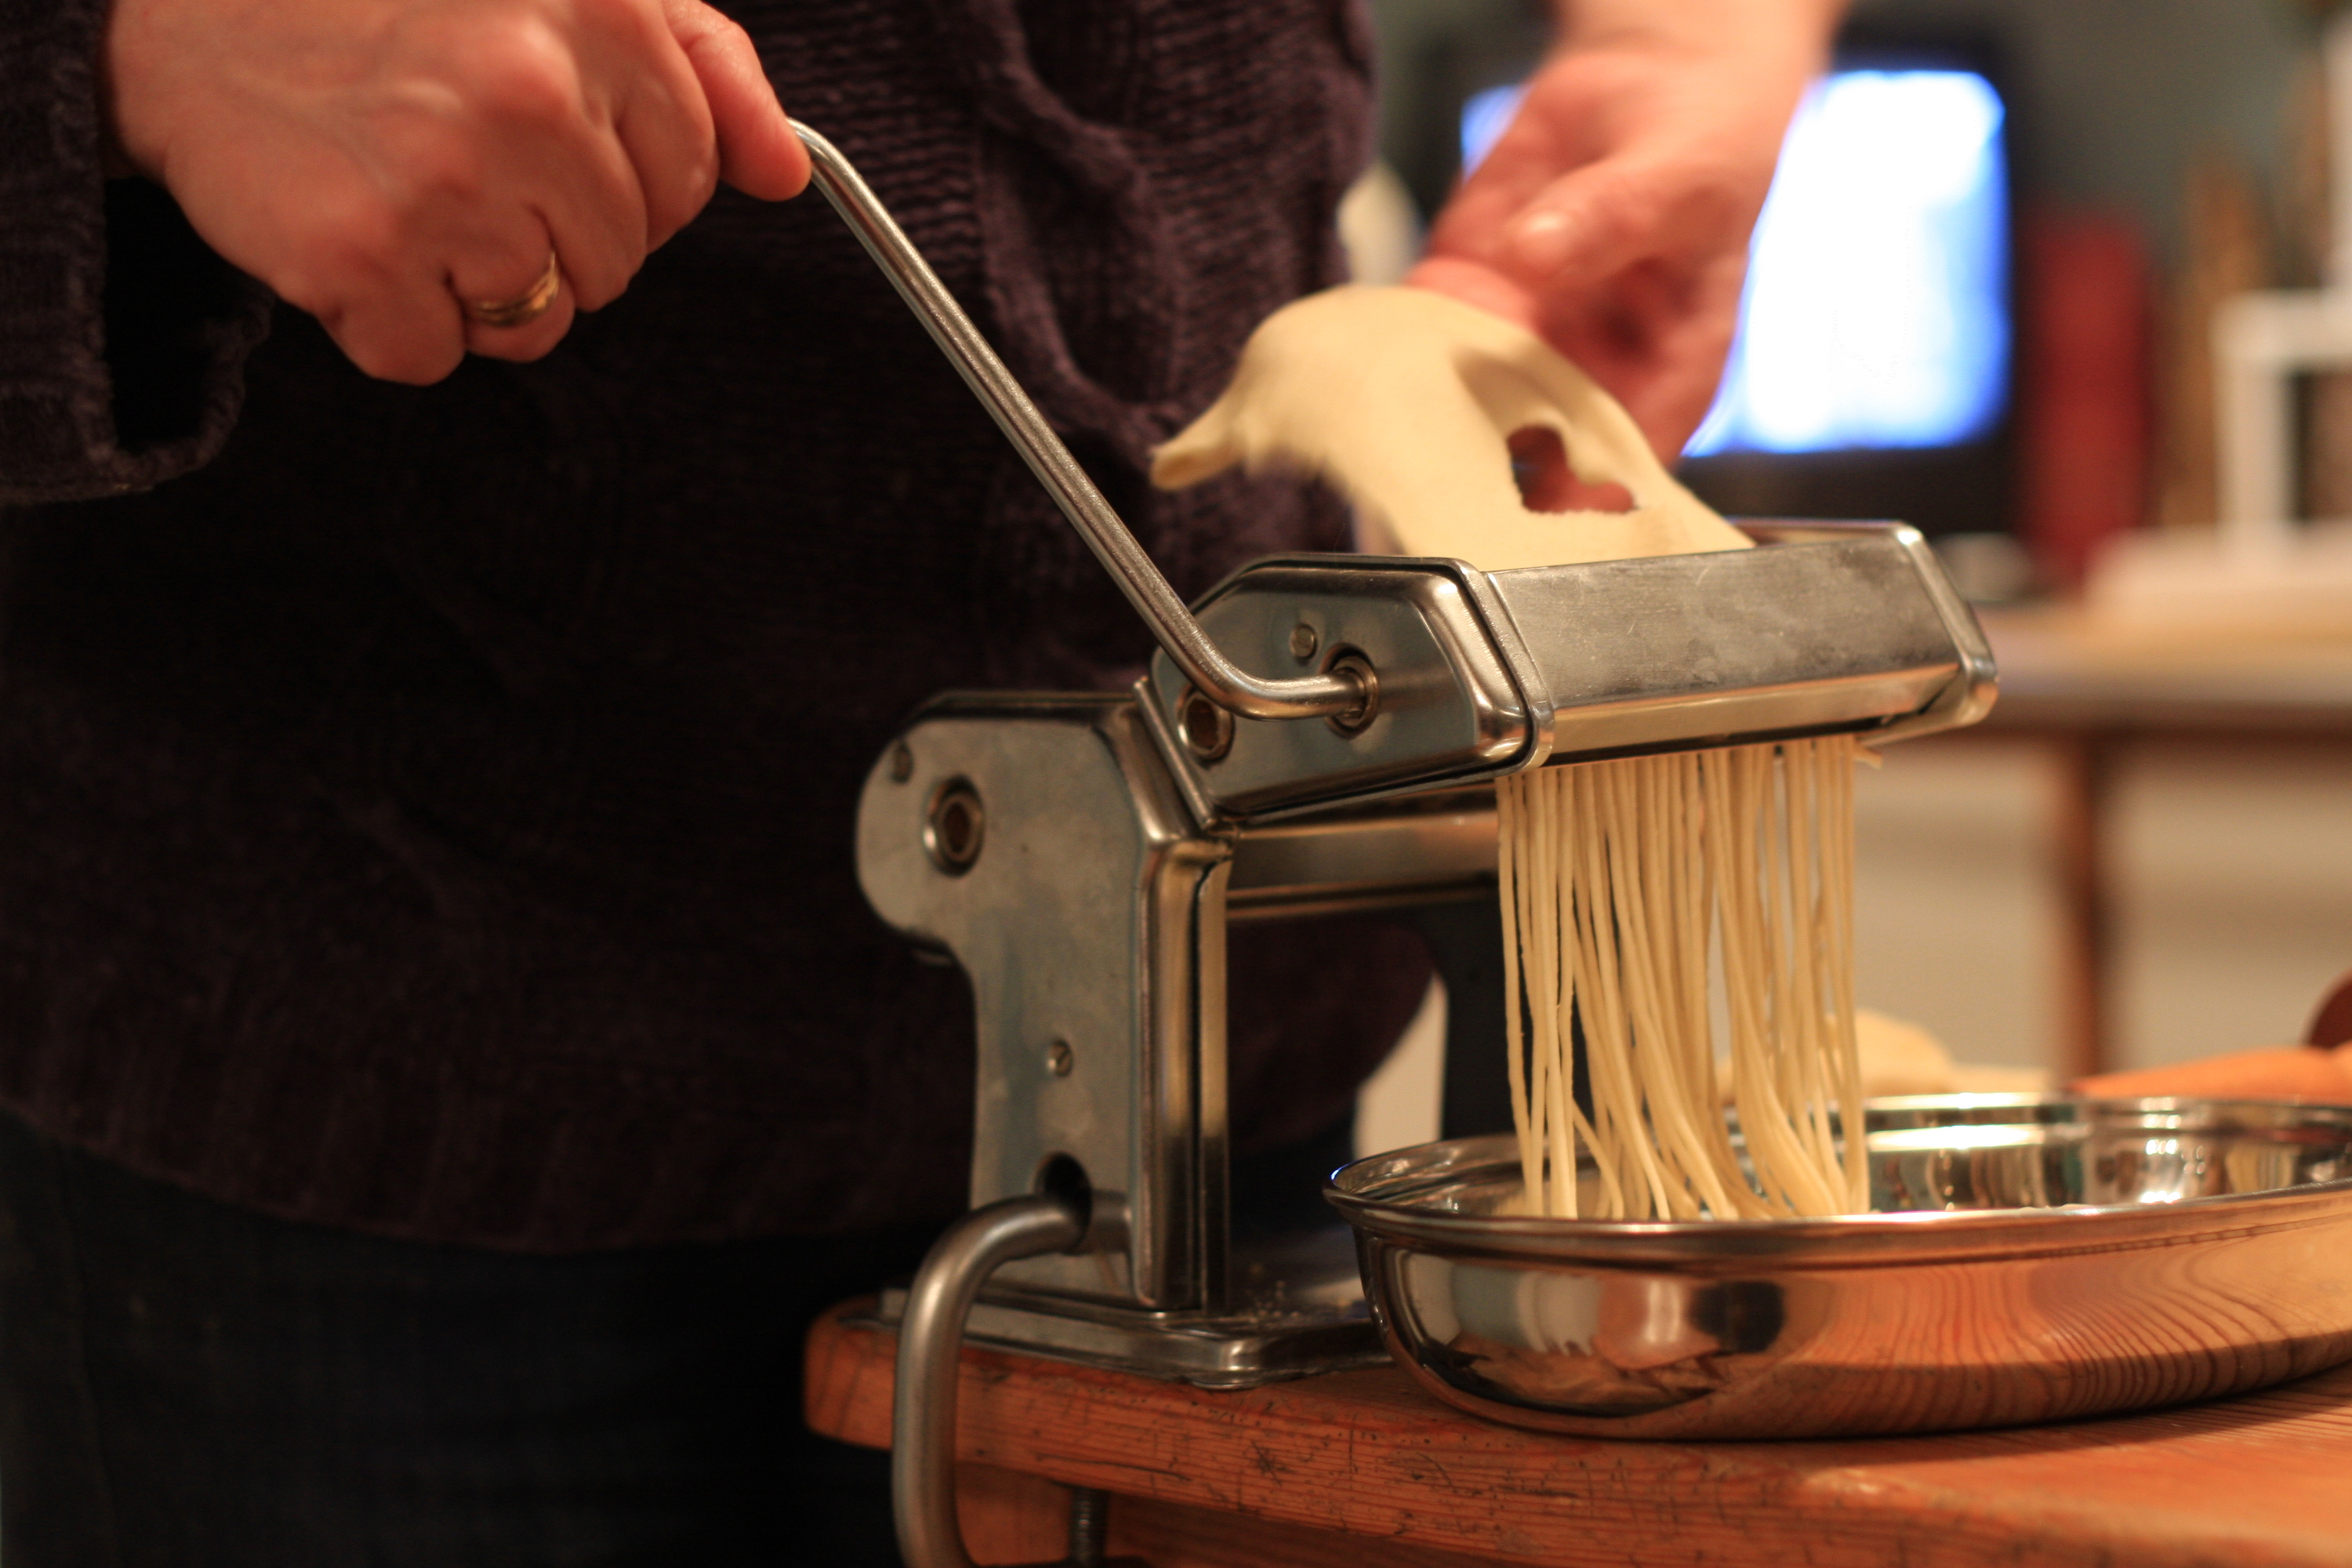 6 awesome cooking classes in Chicago to channel your inner chef